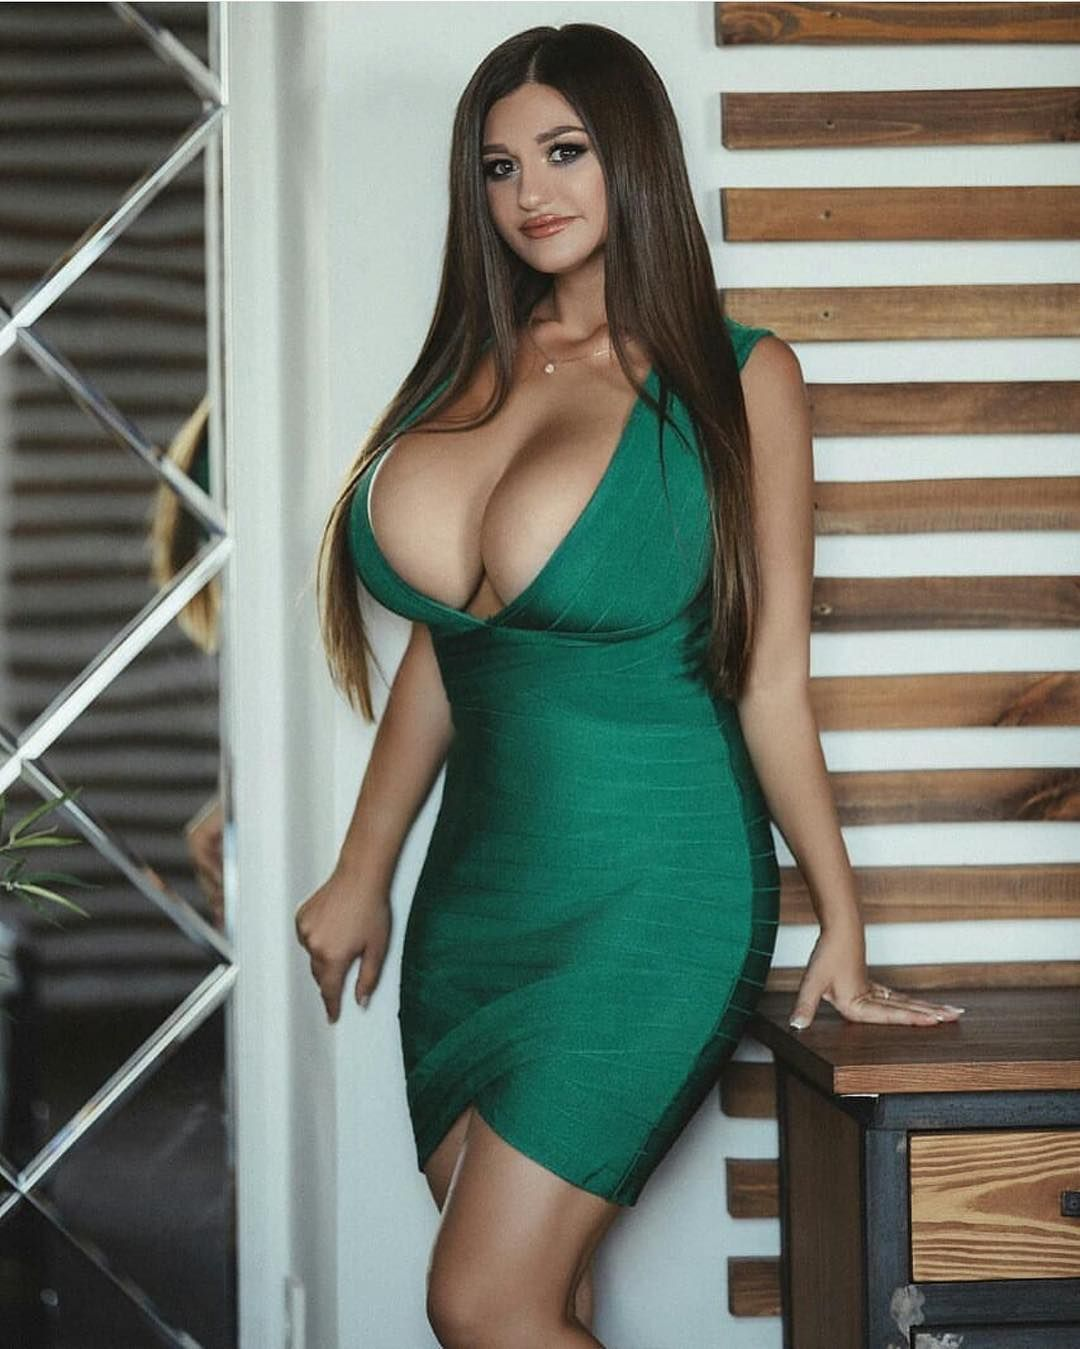 Most Flattering Outfits For Women With Large Breasts